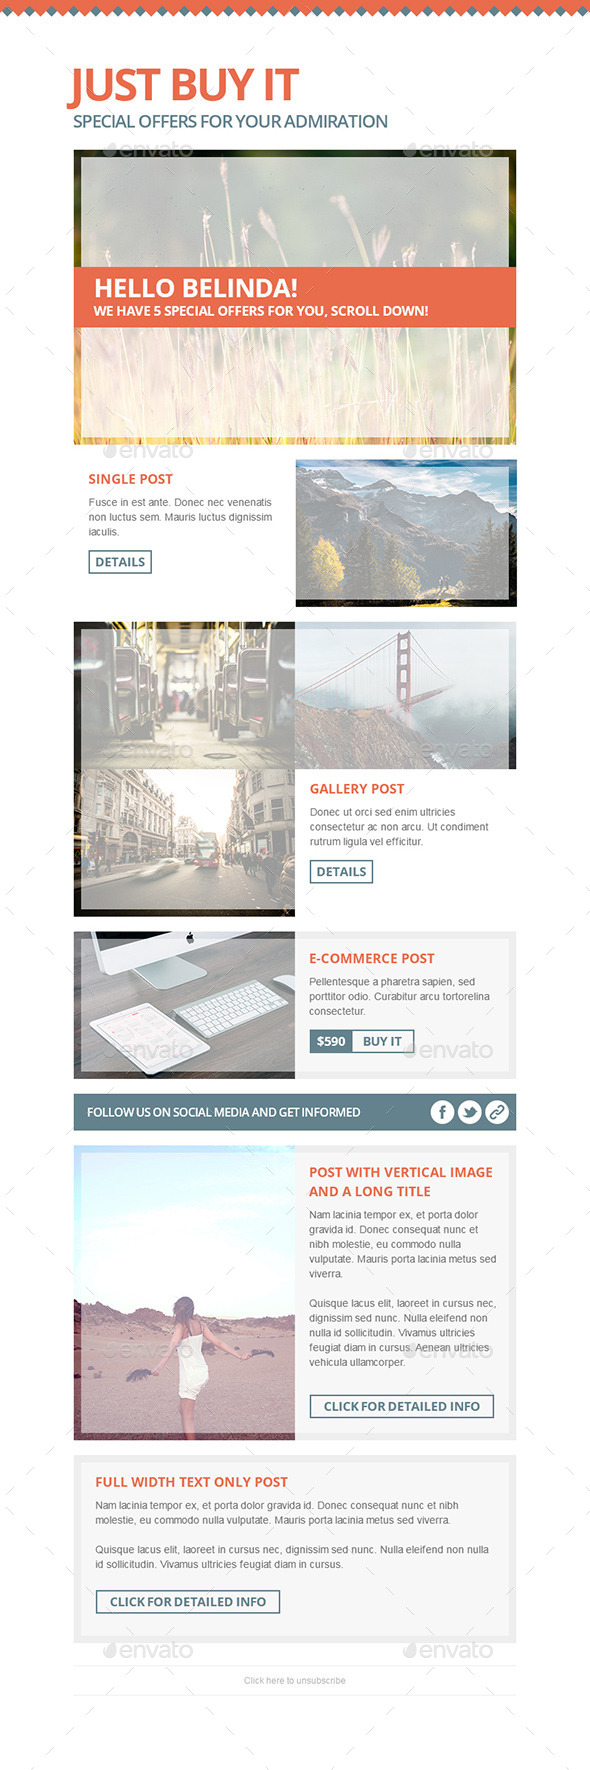 GraphicRiver Just Buy It E-Commerce & Offer Mail Template 11277625